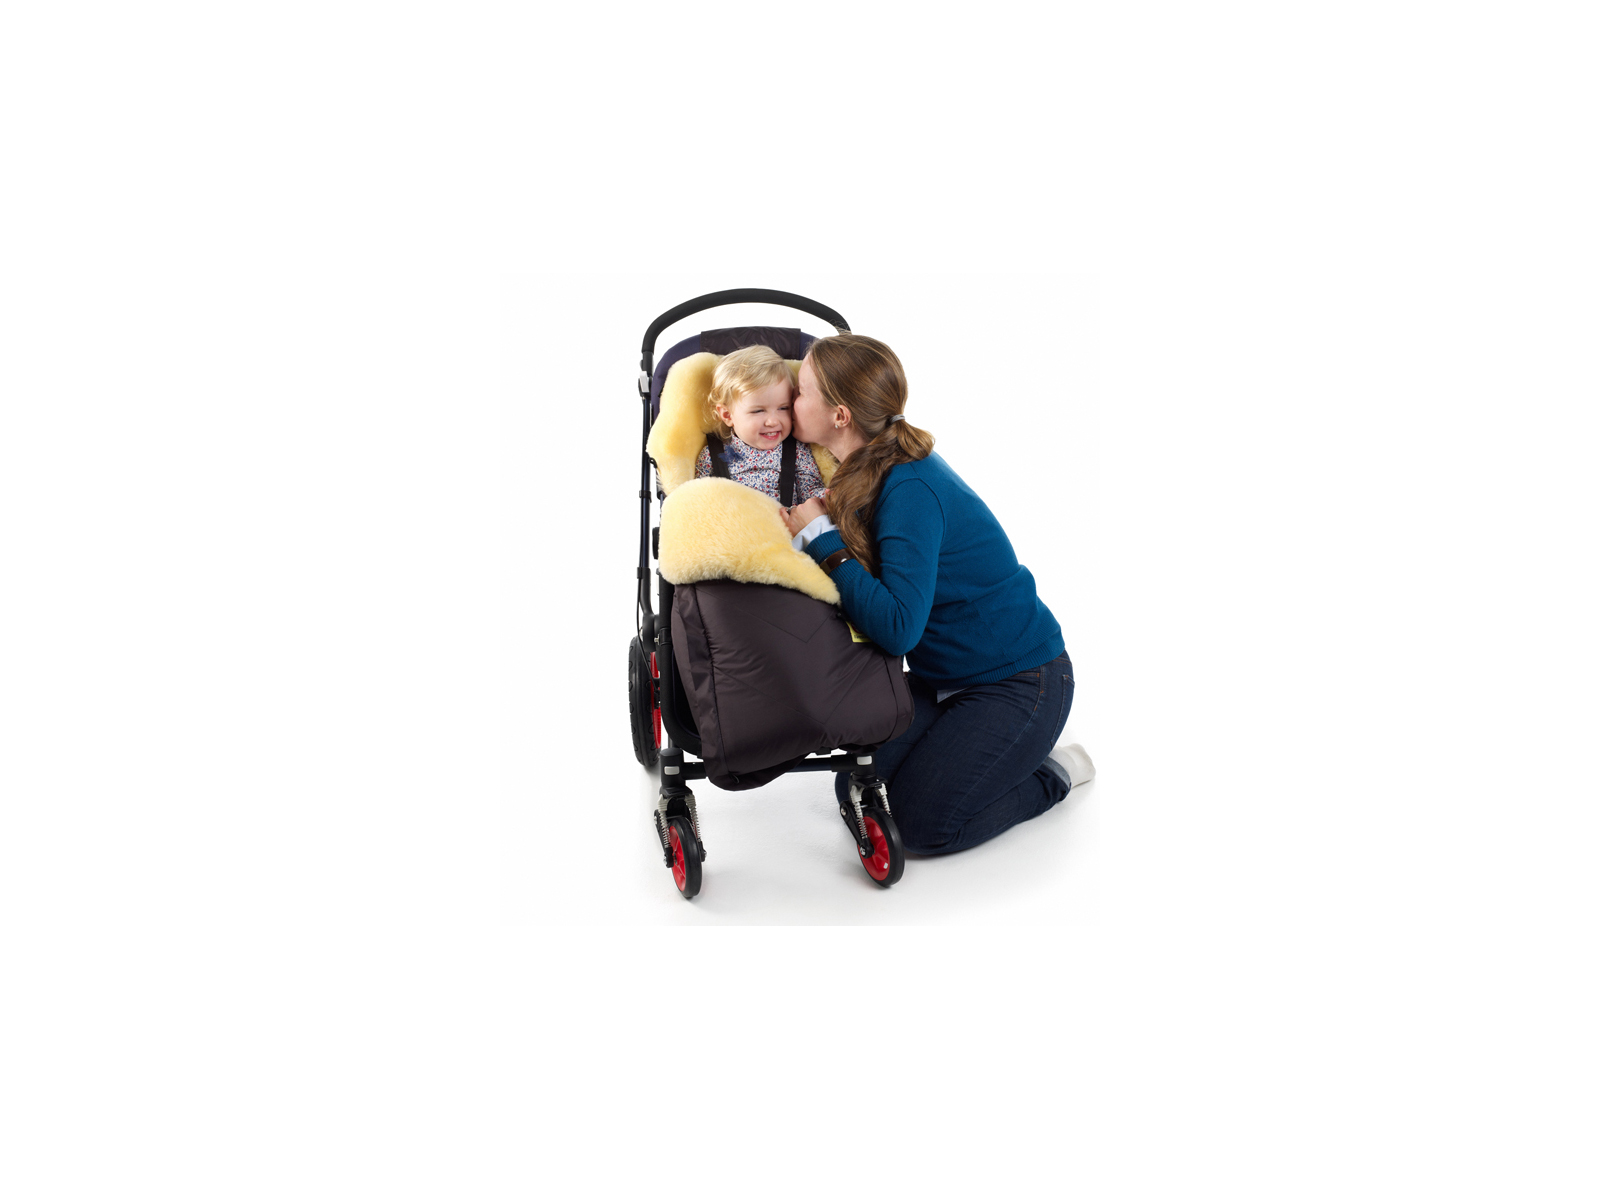 Baby-With-Mom-in-Stroller